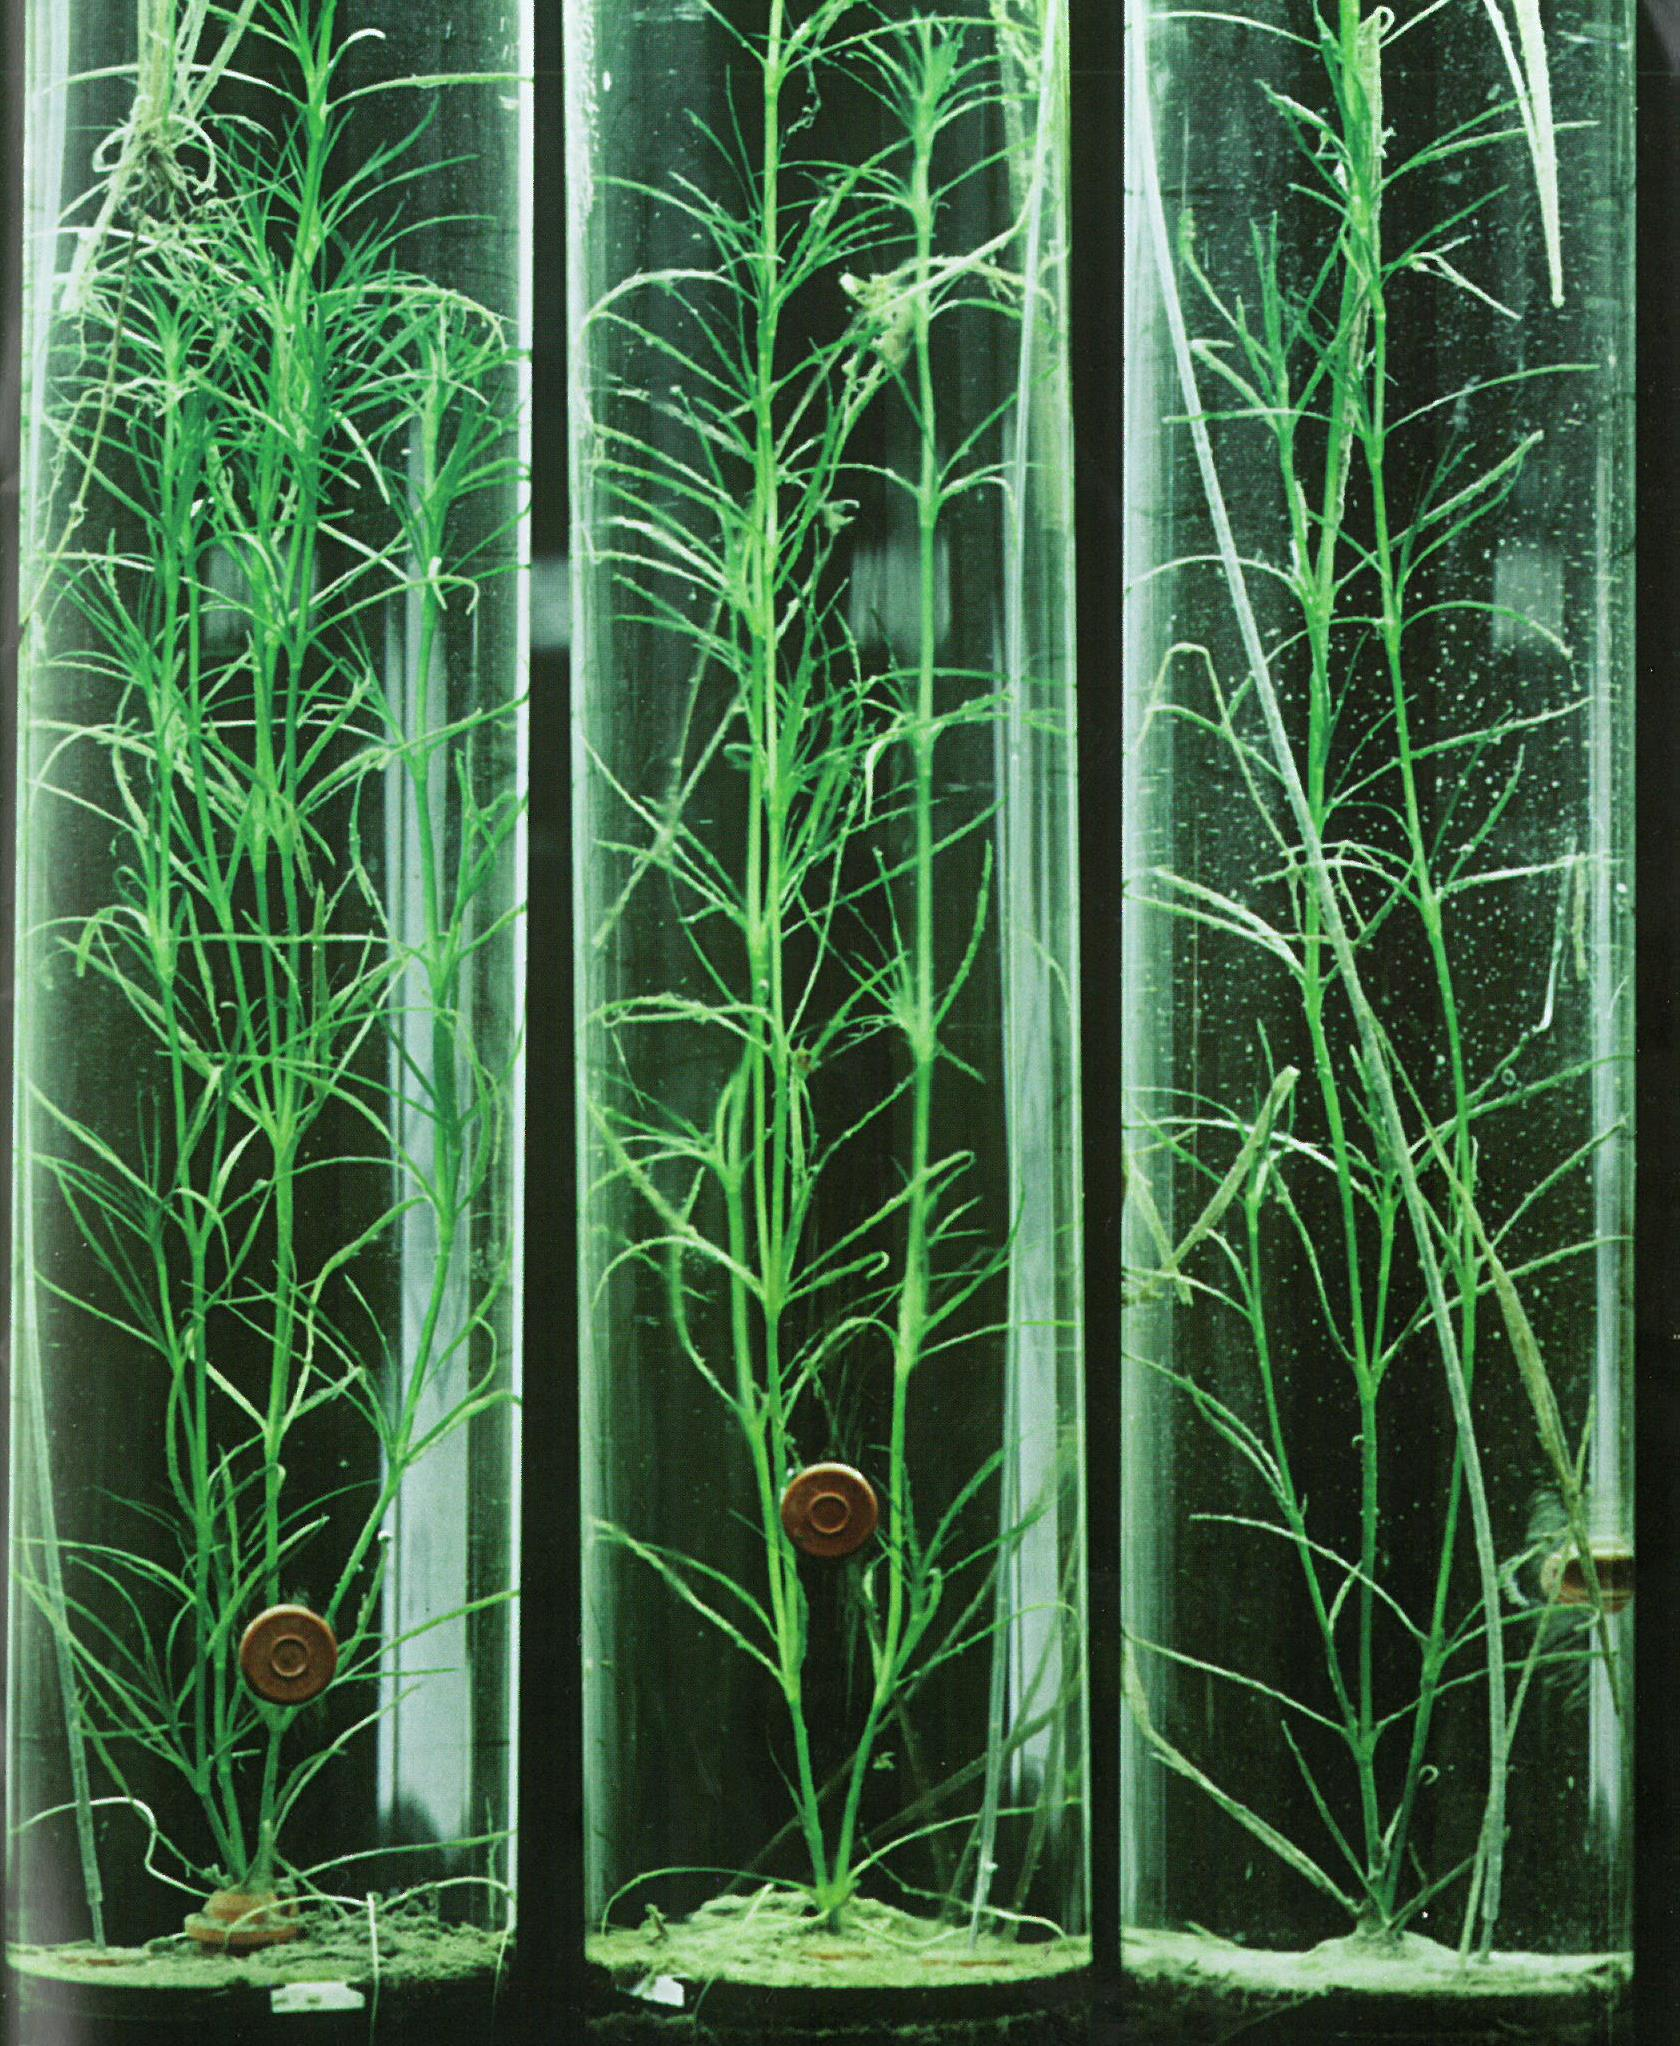 submerged seagrasses